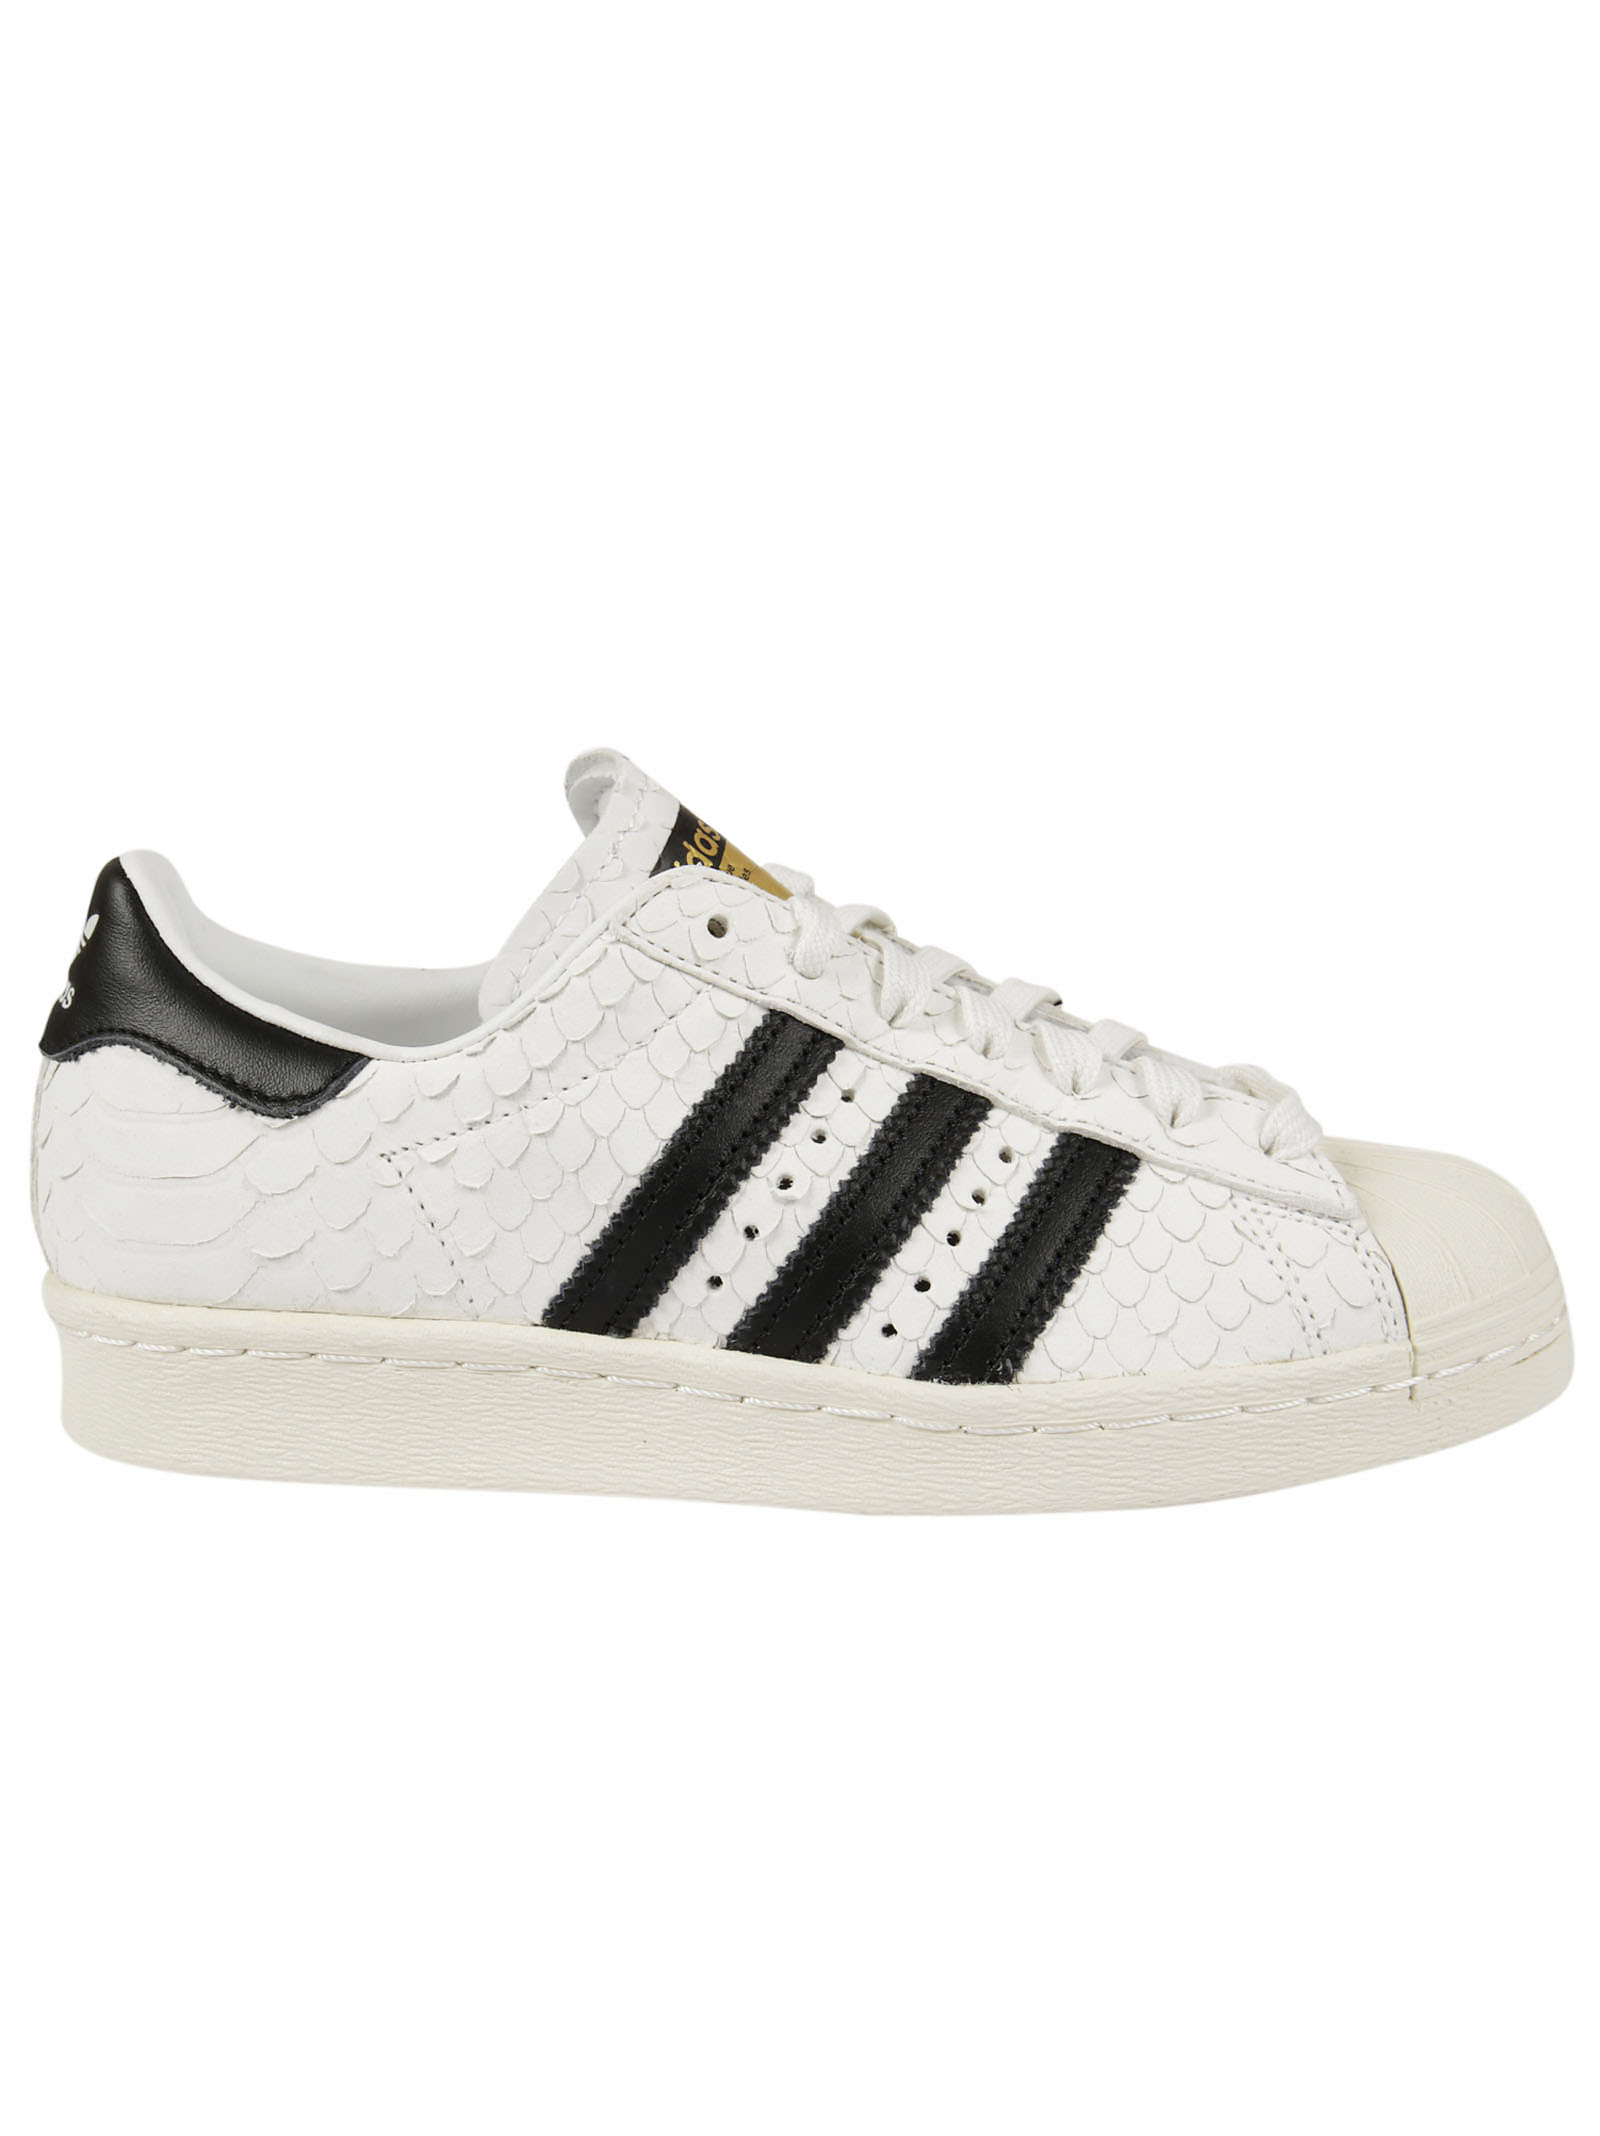 Adidas Adidas Superstar 80s Sneakers